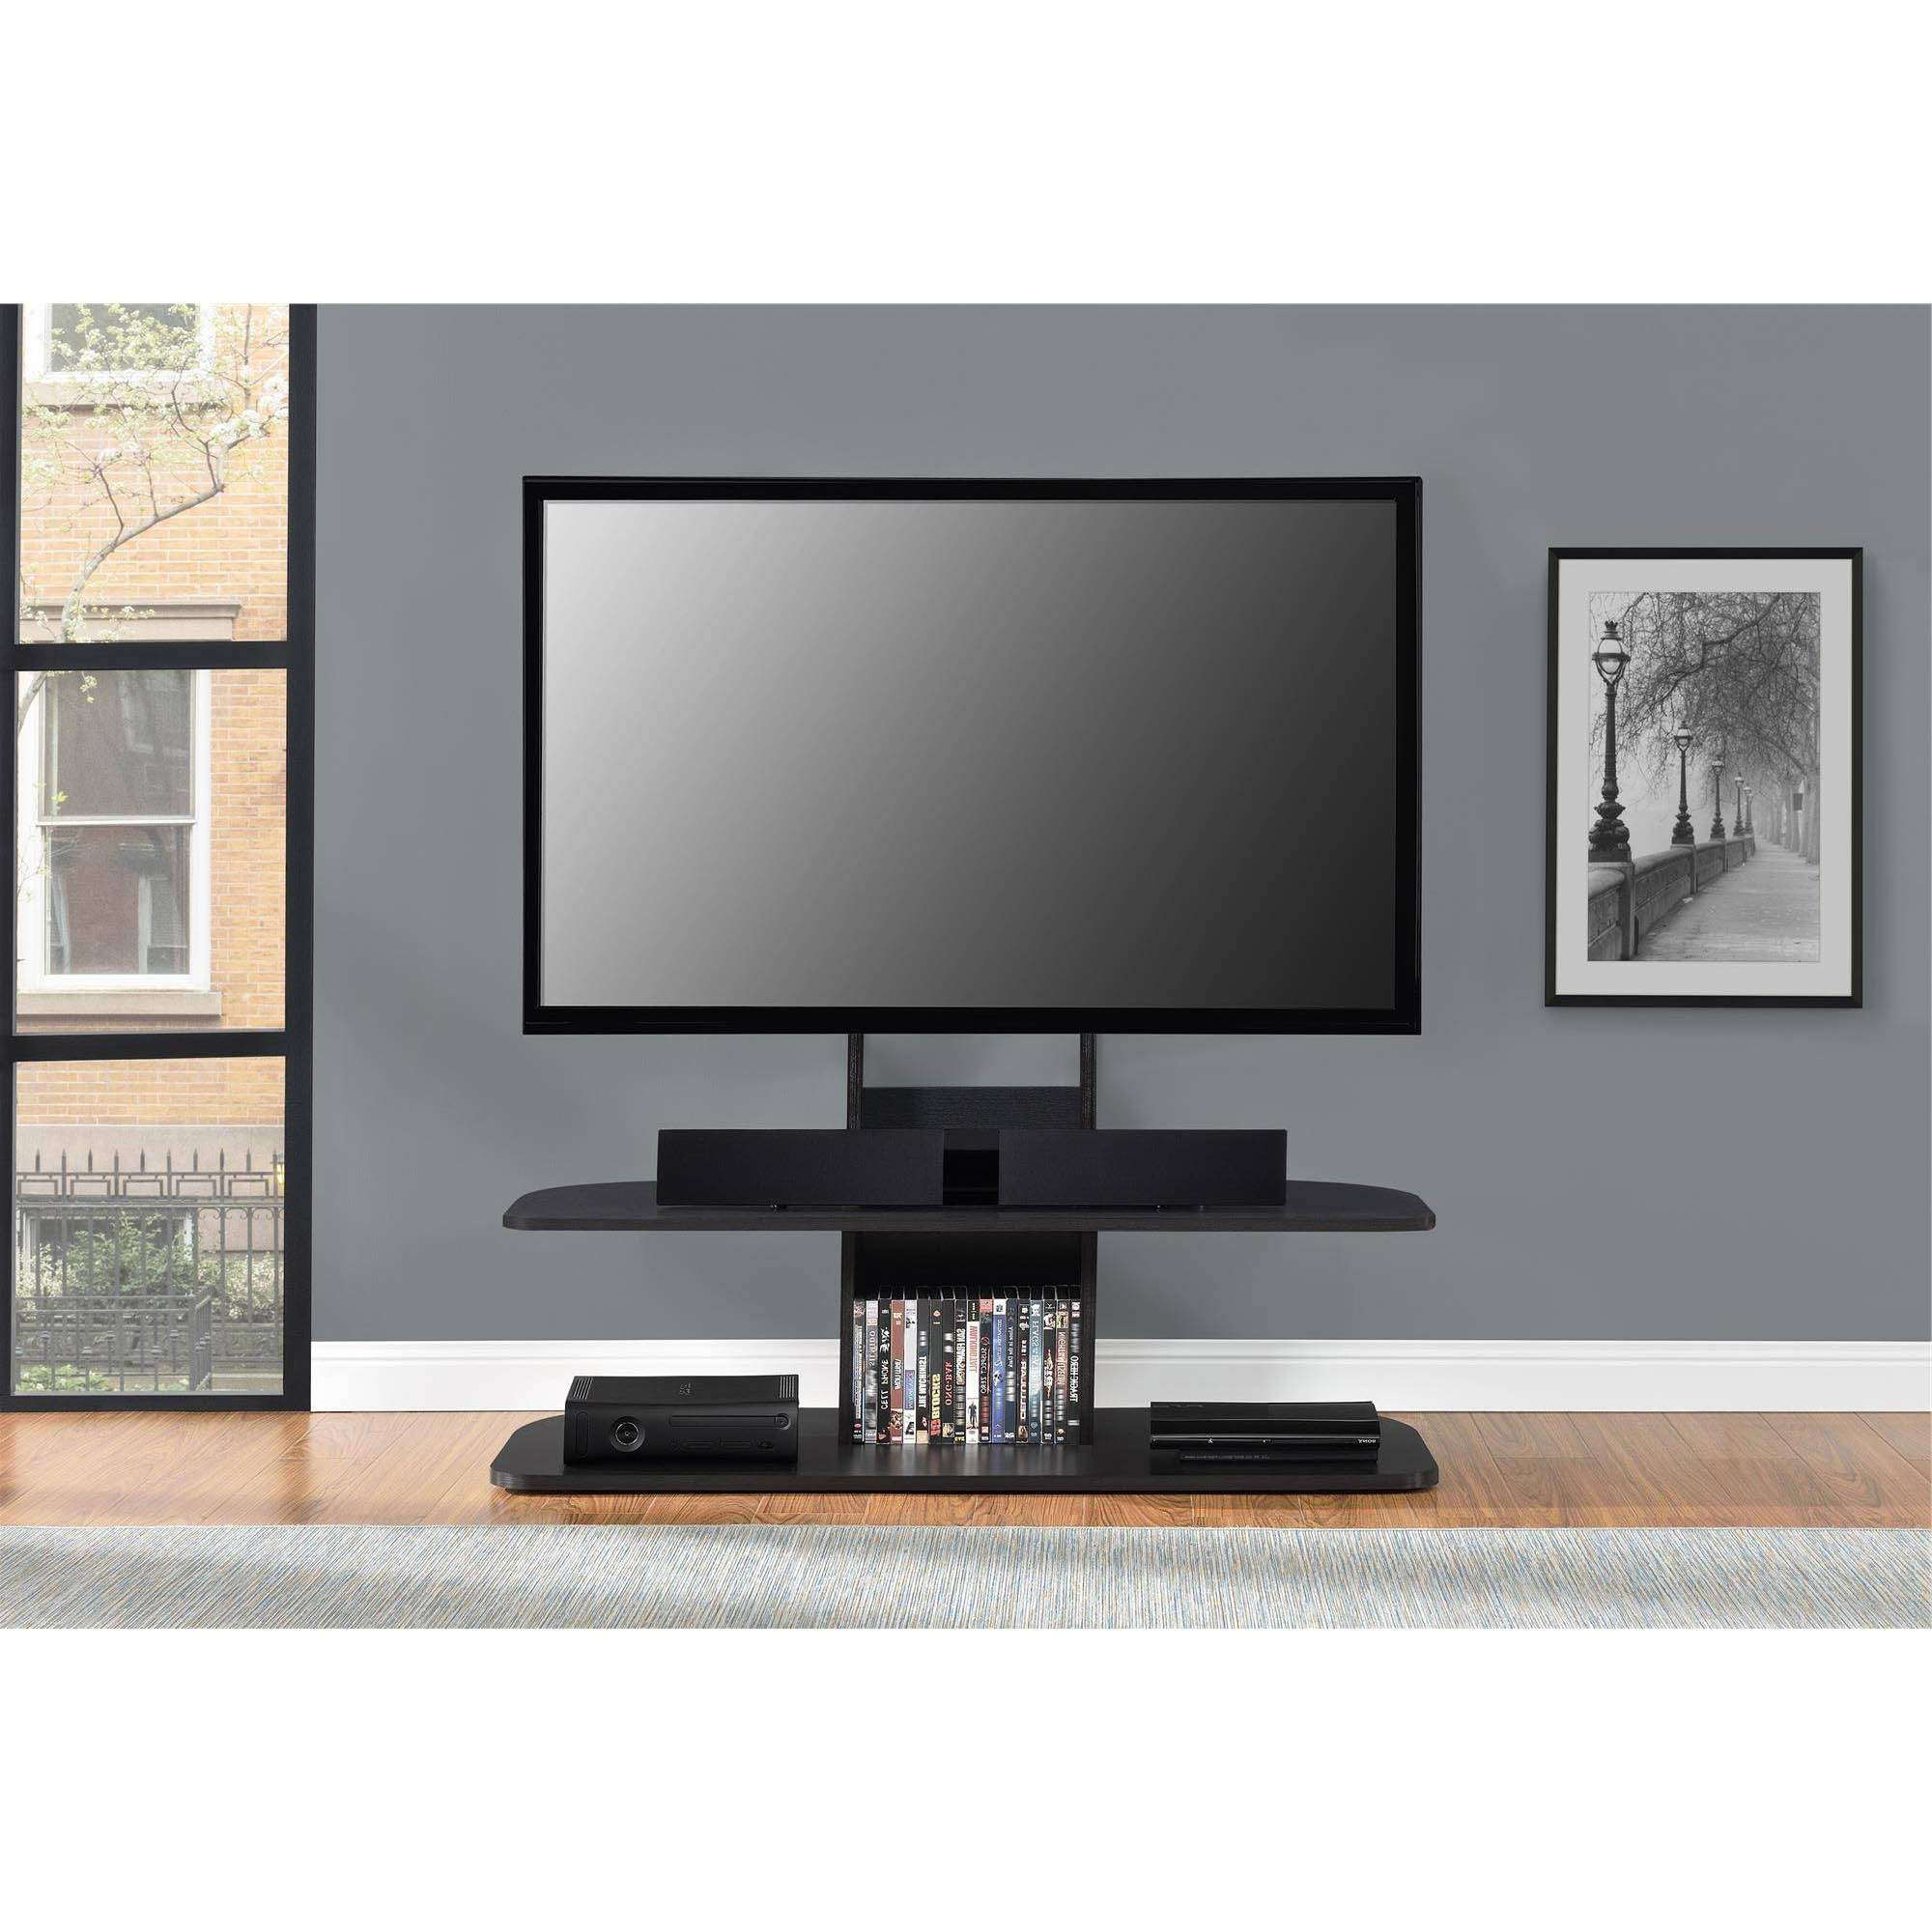 Good Tv Stands 60 Inch Flat Screens 18 For Your Modern Home Decor Within Modern 60 Inch Tv Stands (Gallery 5 of 20)